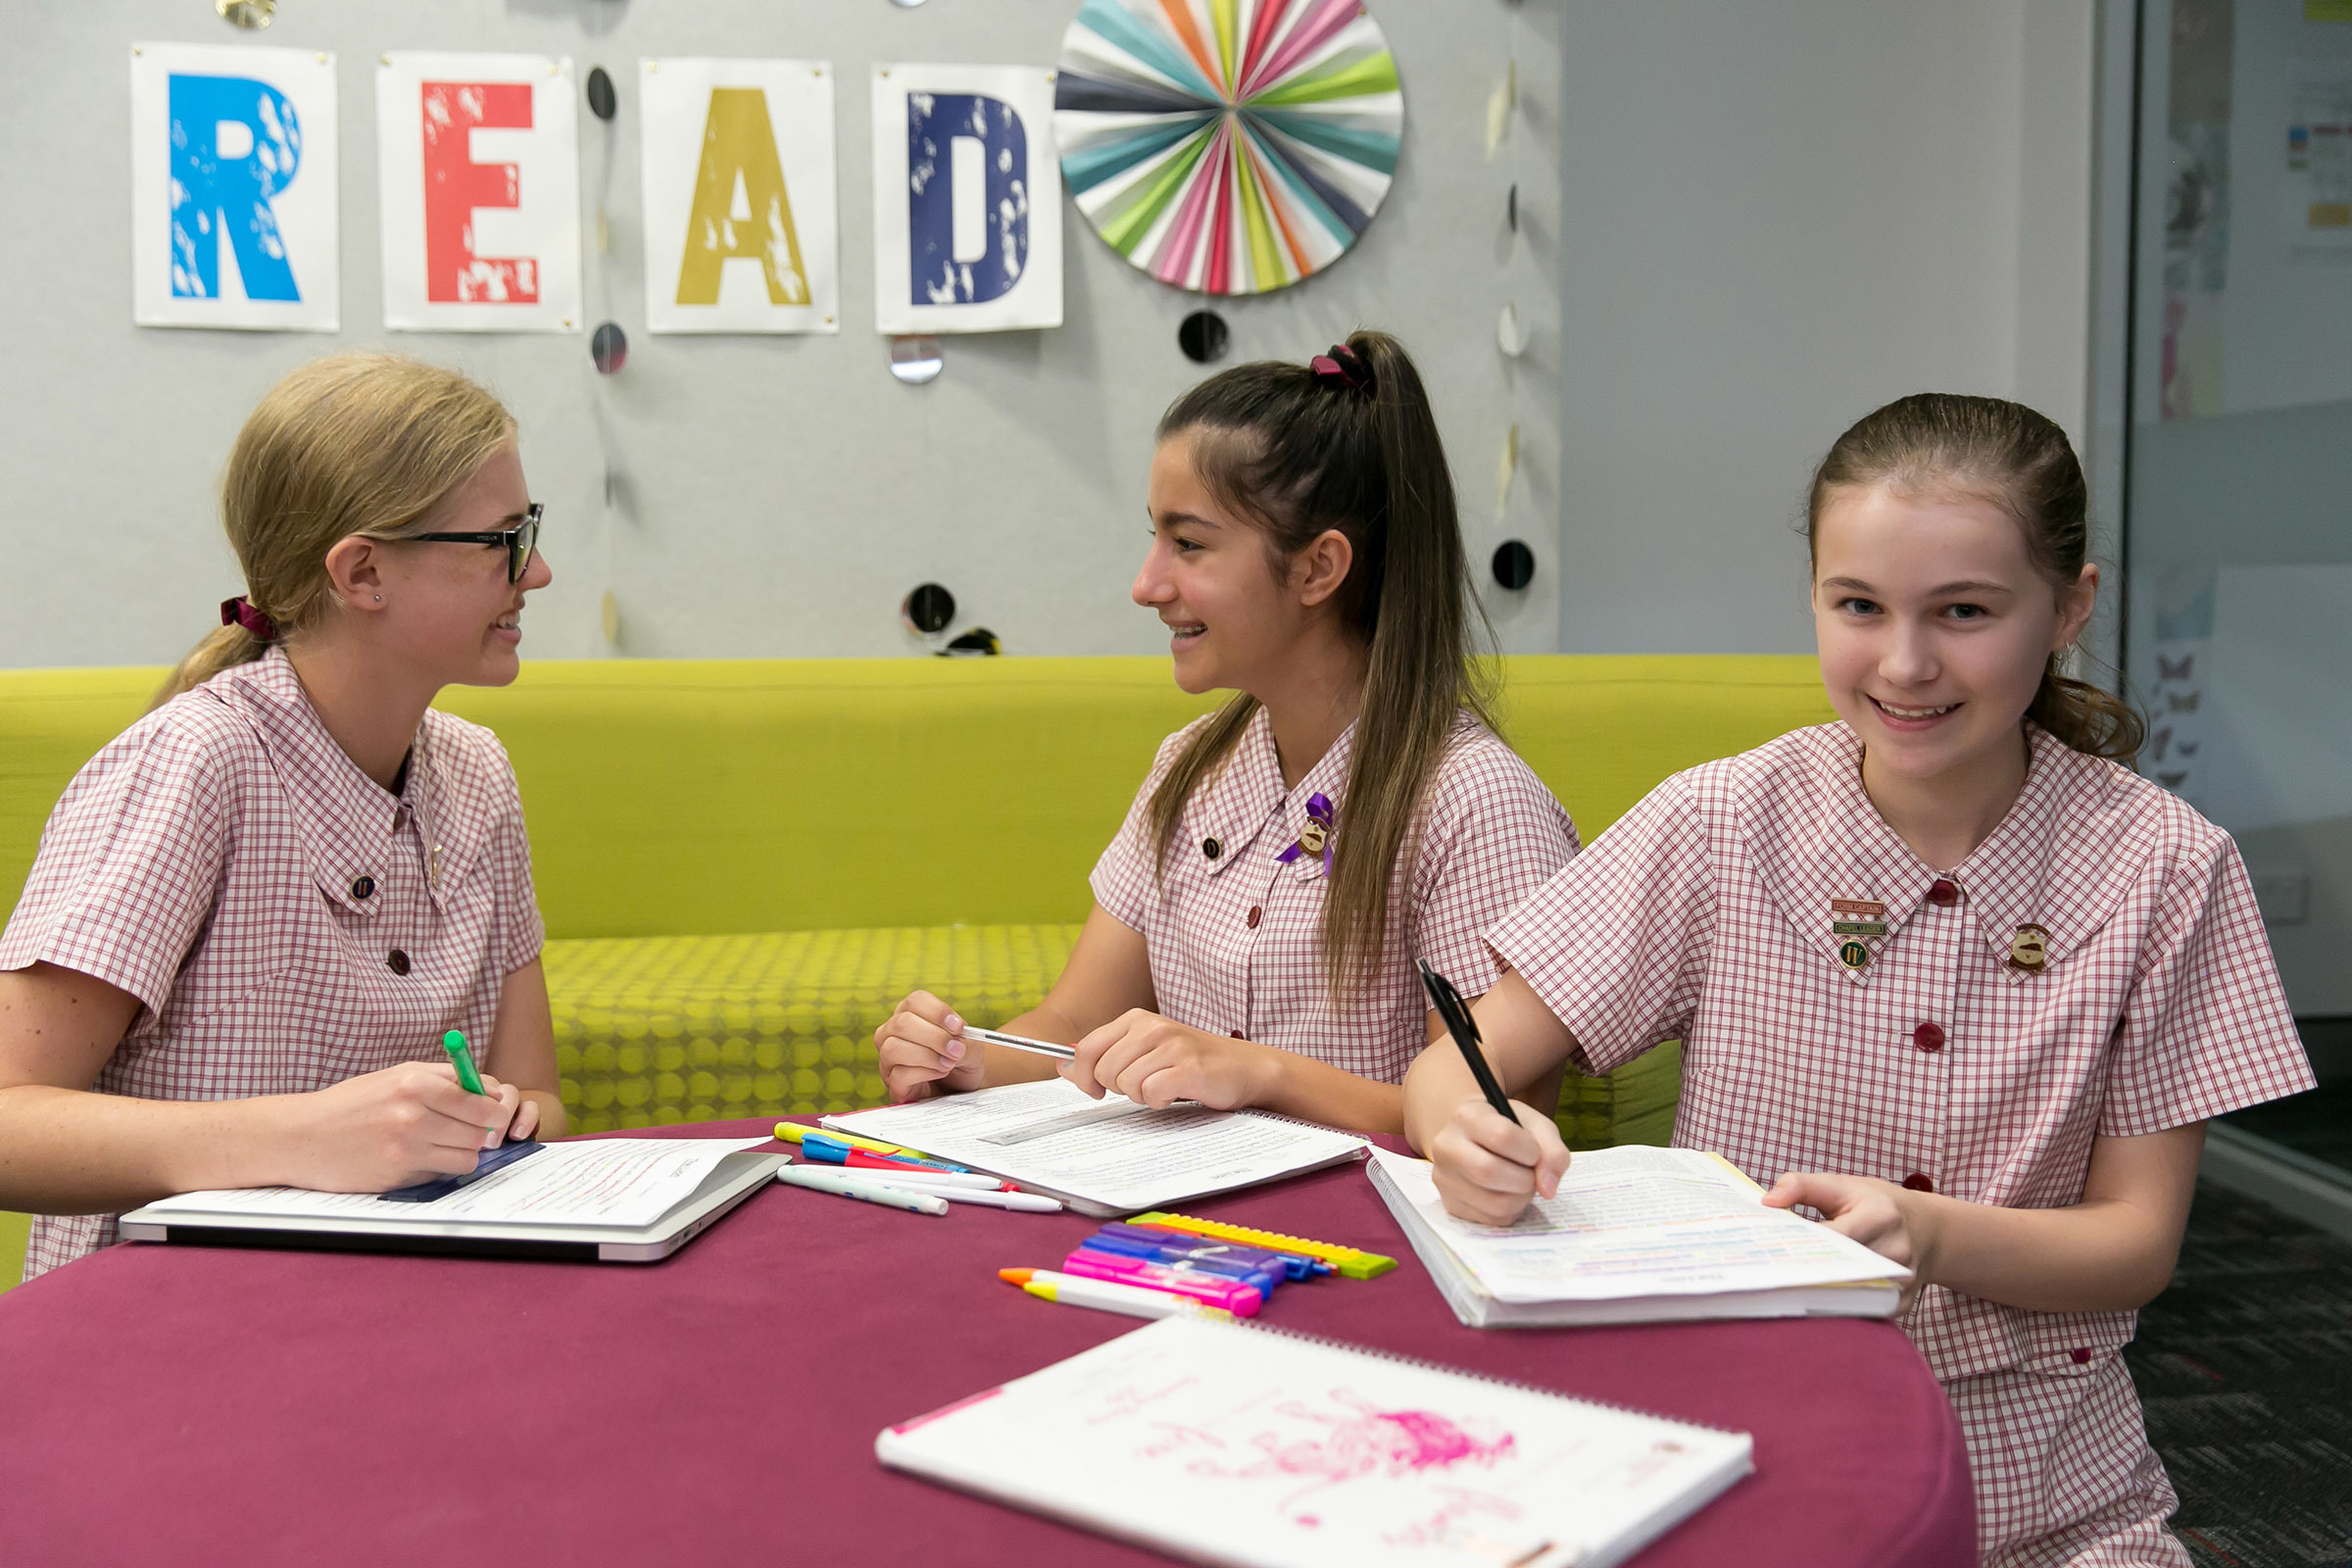 A learning environment tailored to girls